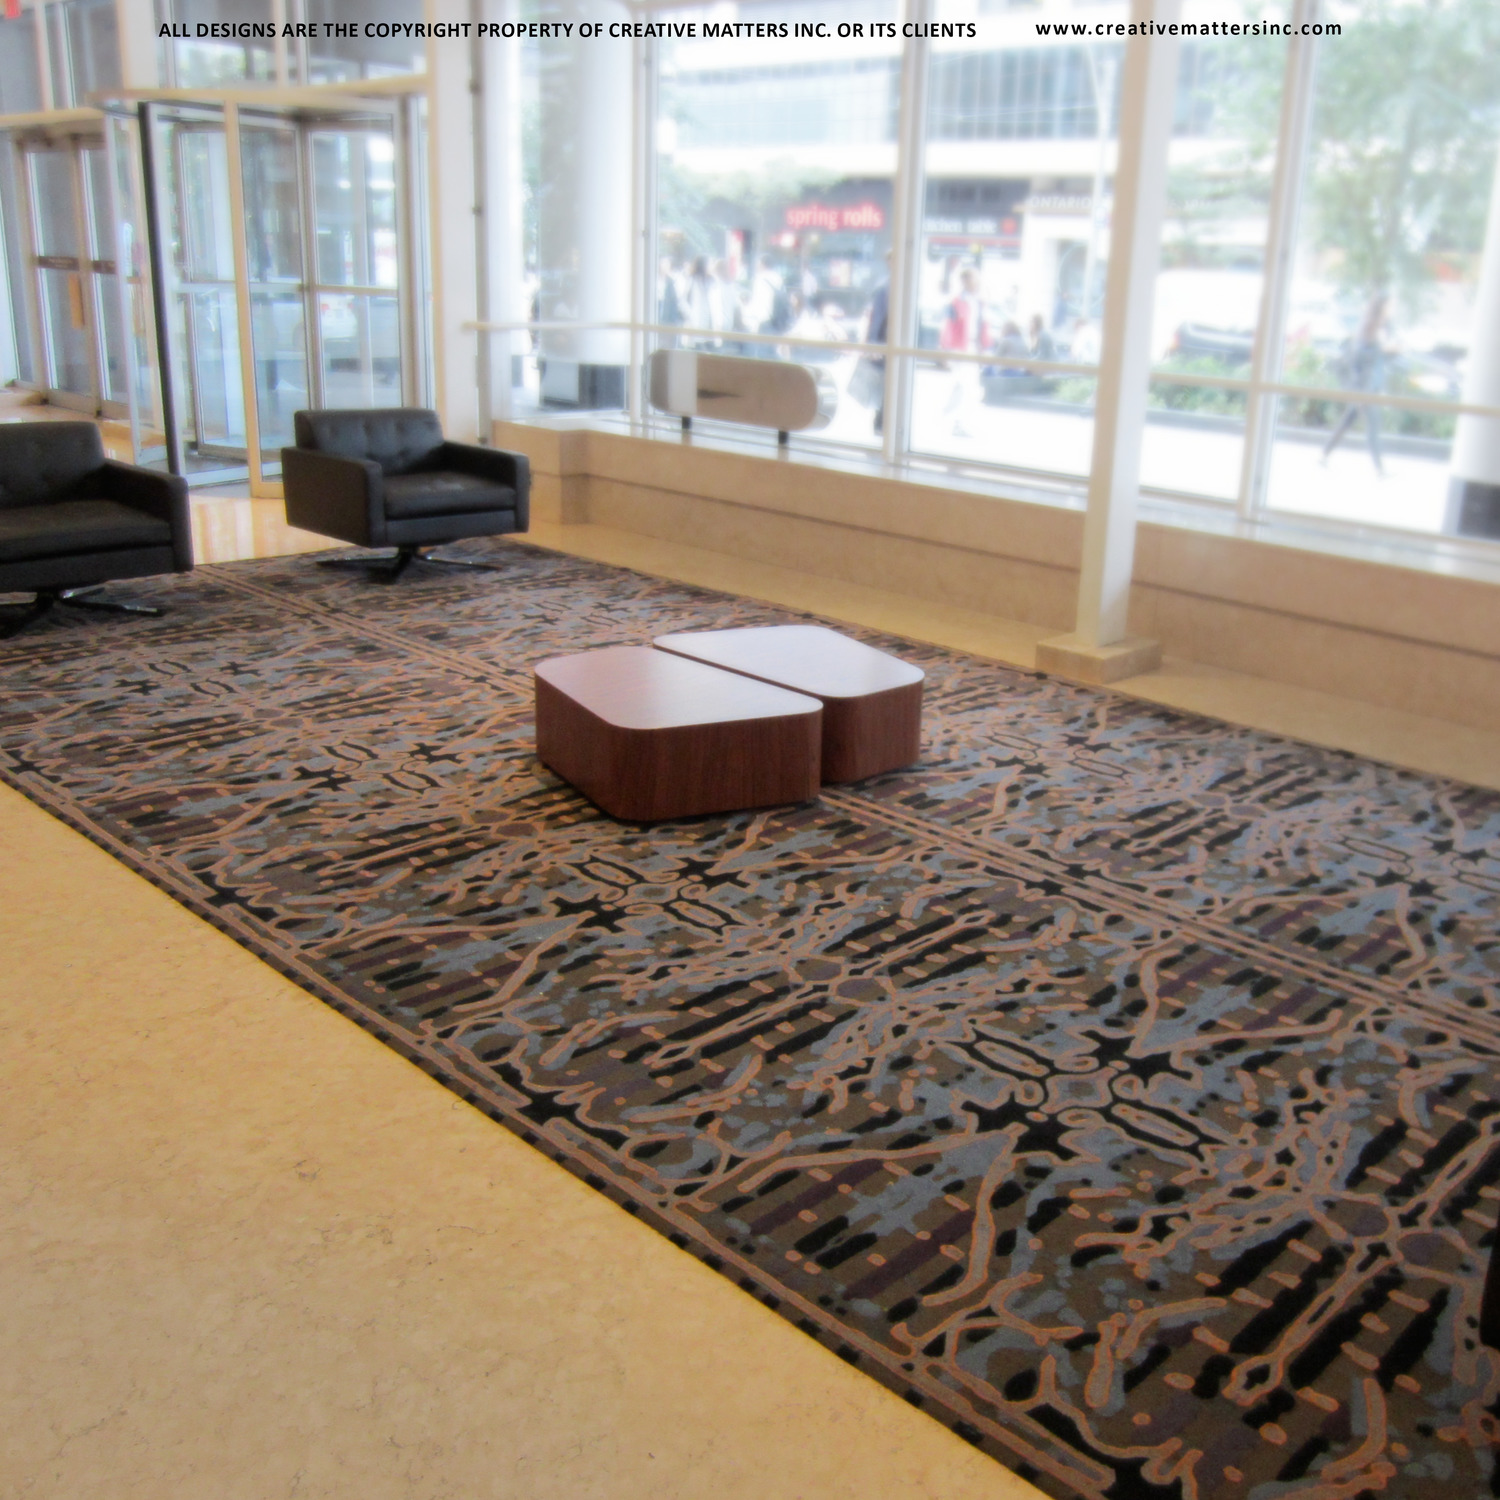 CORPORATE LOBBY IN Toronto, ON WITH in8 designINC. HANDTUFTED IN THAILAND, 100% WOOL  . CARPET COPYRIGHT CREATIVE MATTERS INCORPORATED.